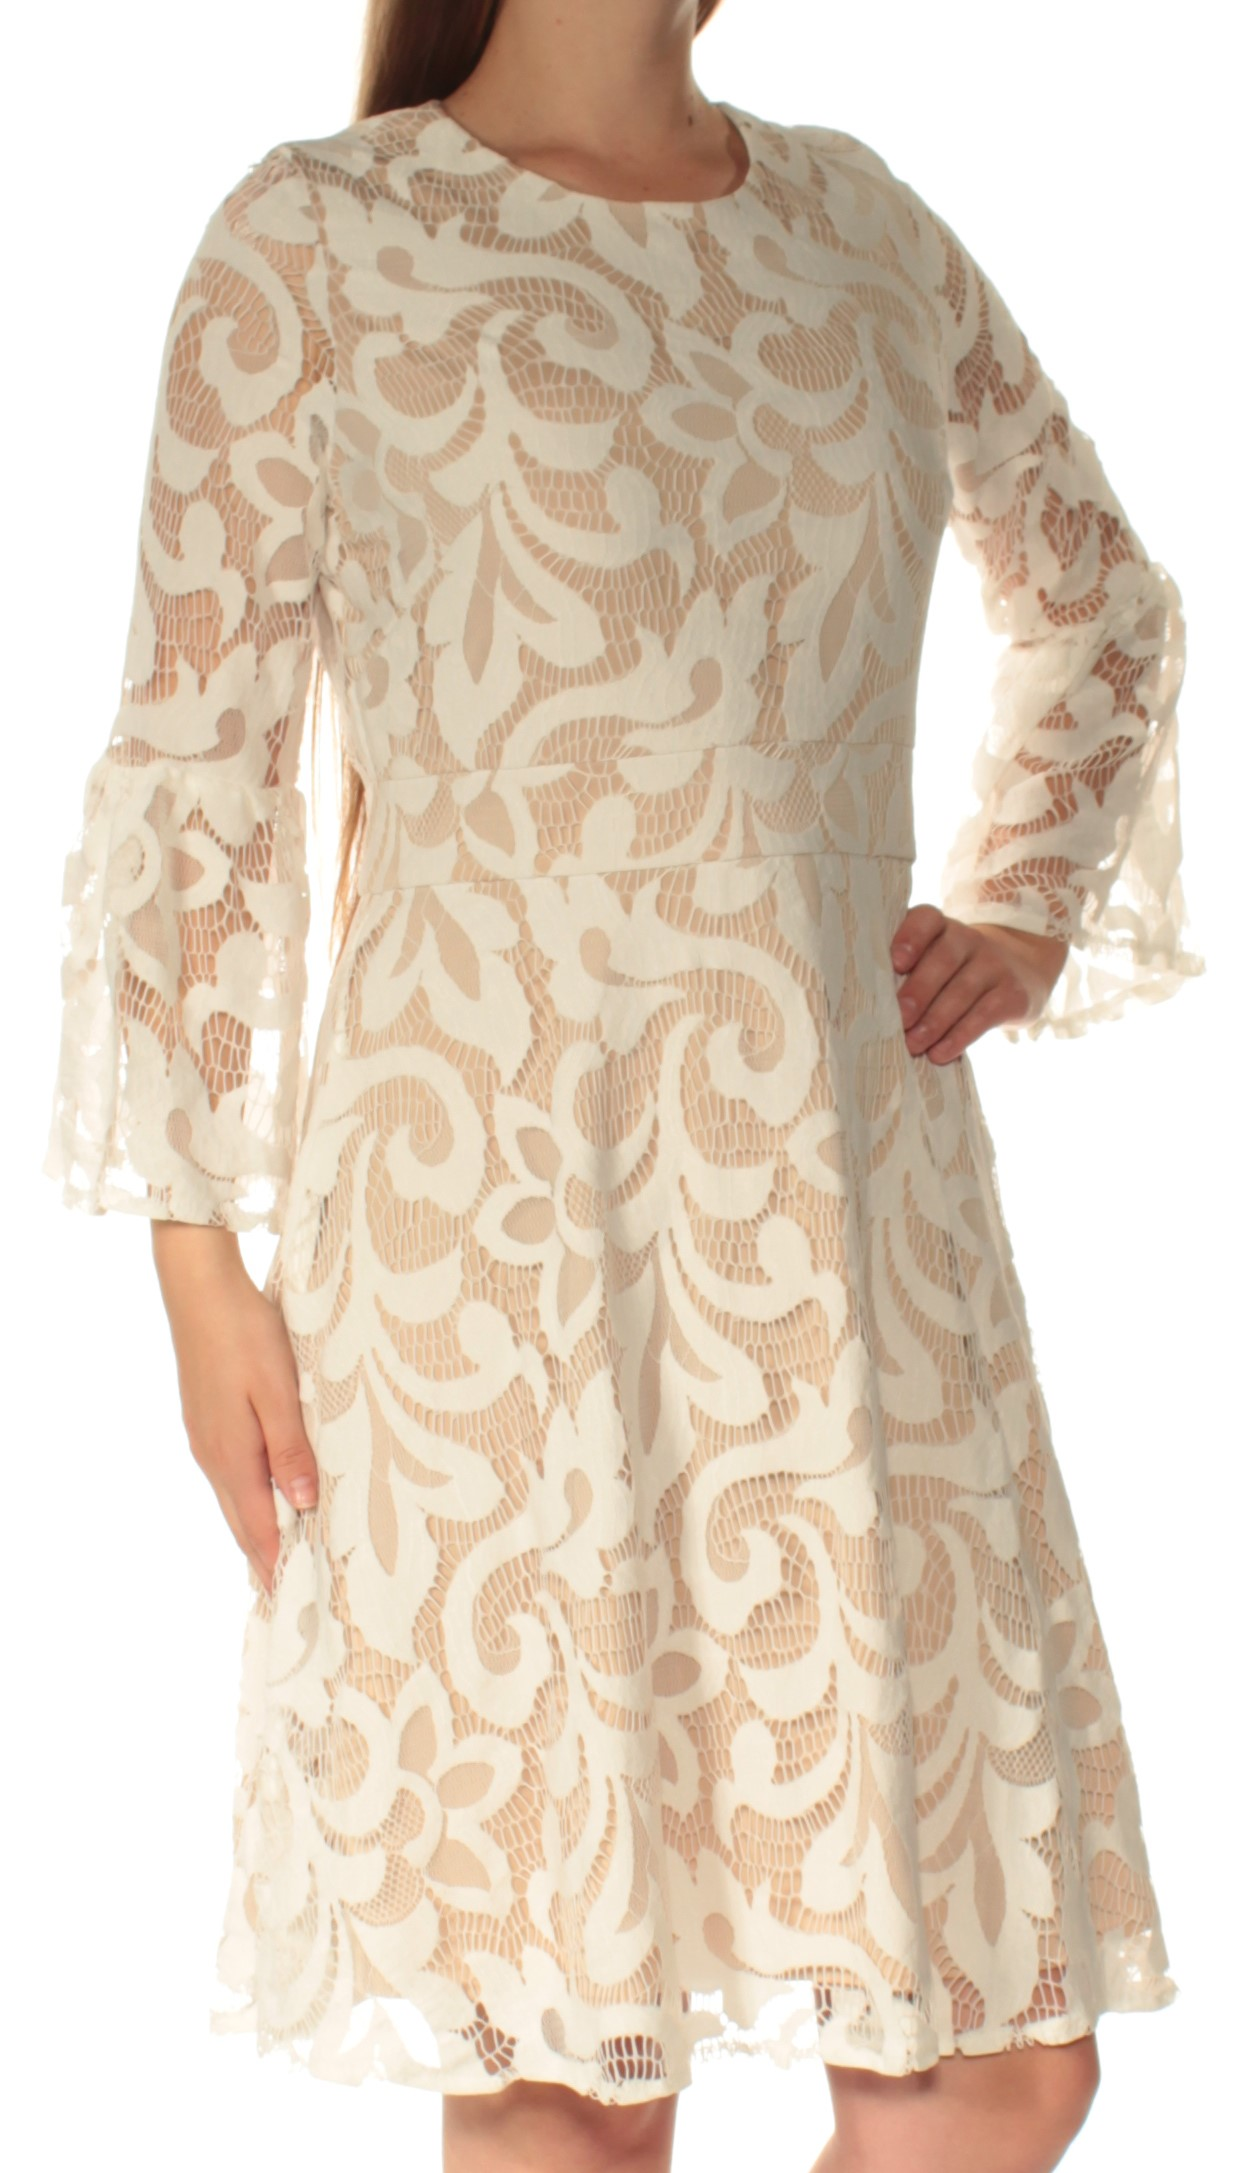 Details About Jessica Howard 99 Womens 1429 Ivory Lace Bell Sleeve Fit Flare Dress 8 Bb